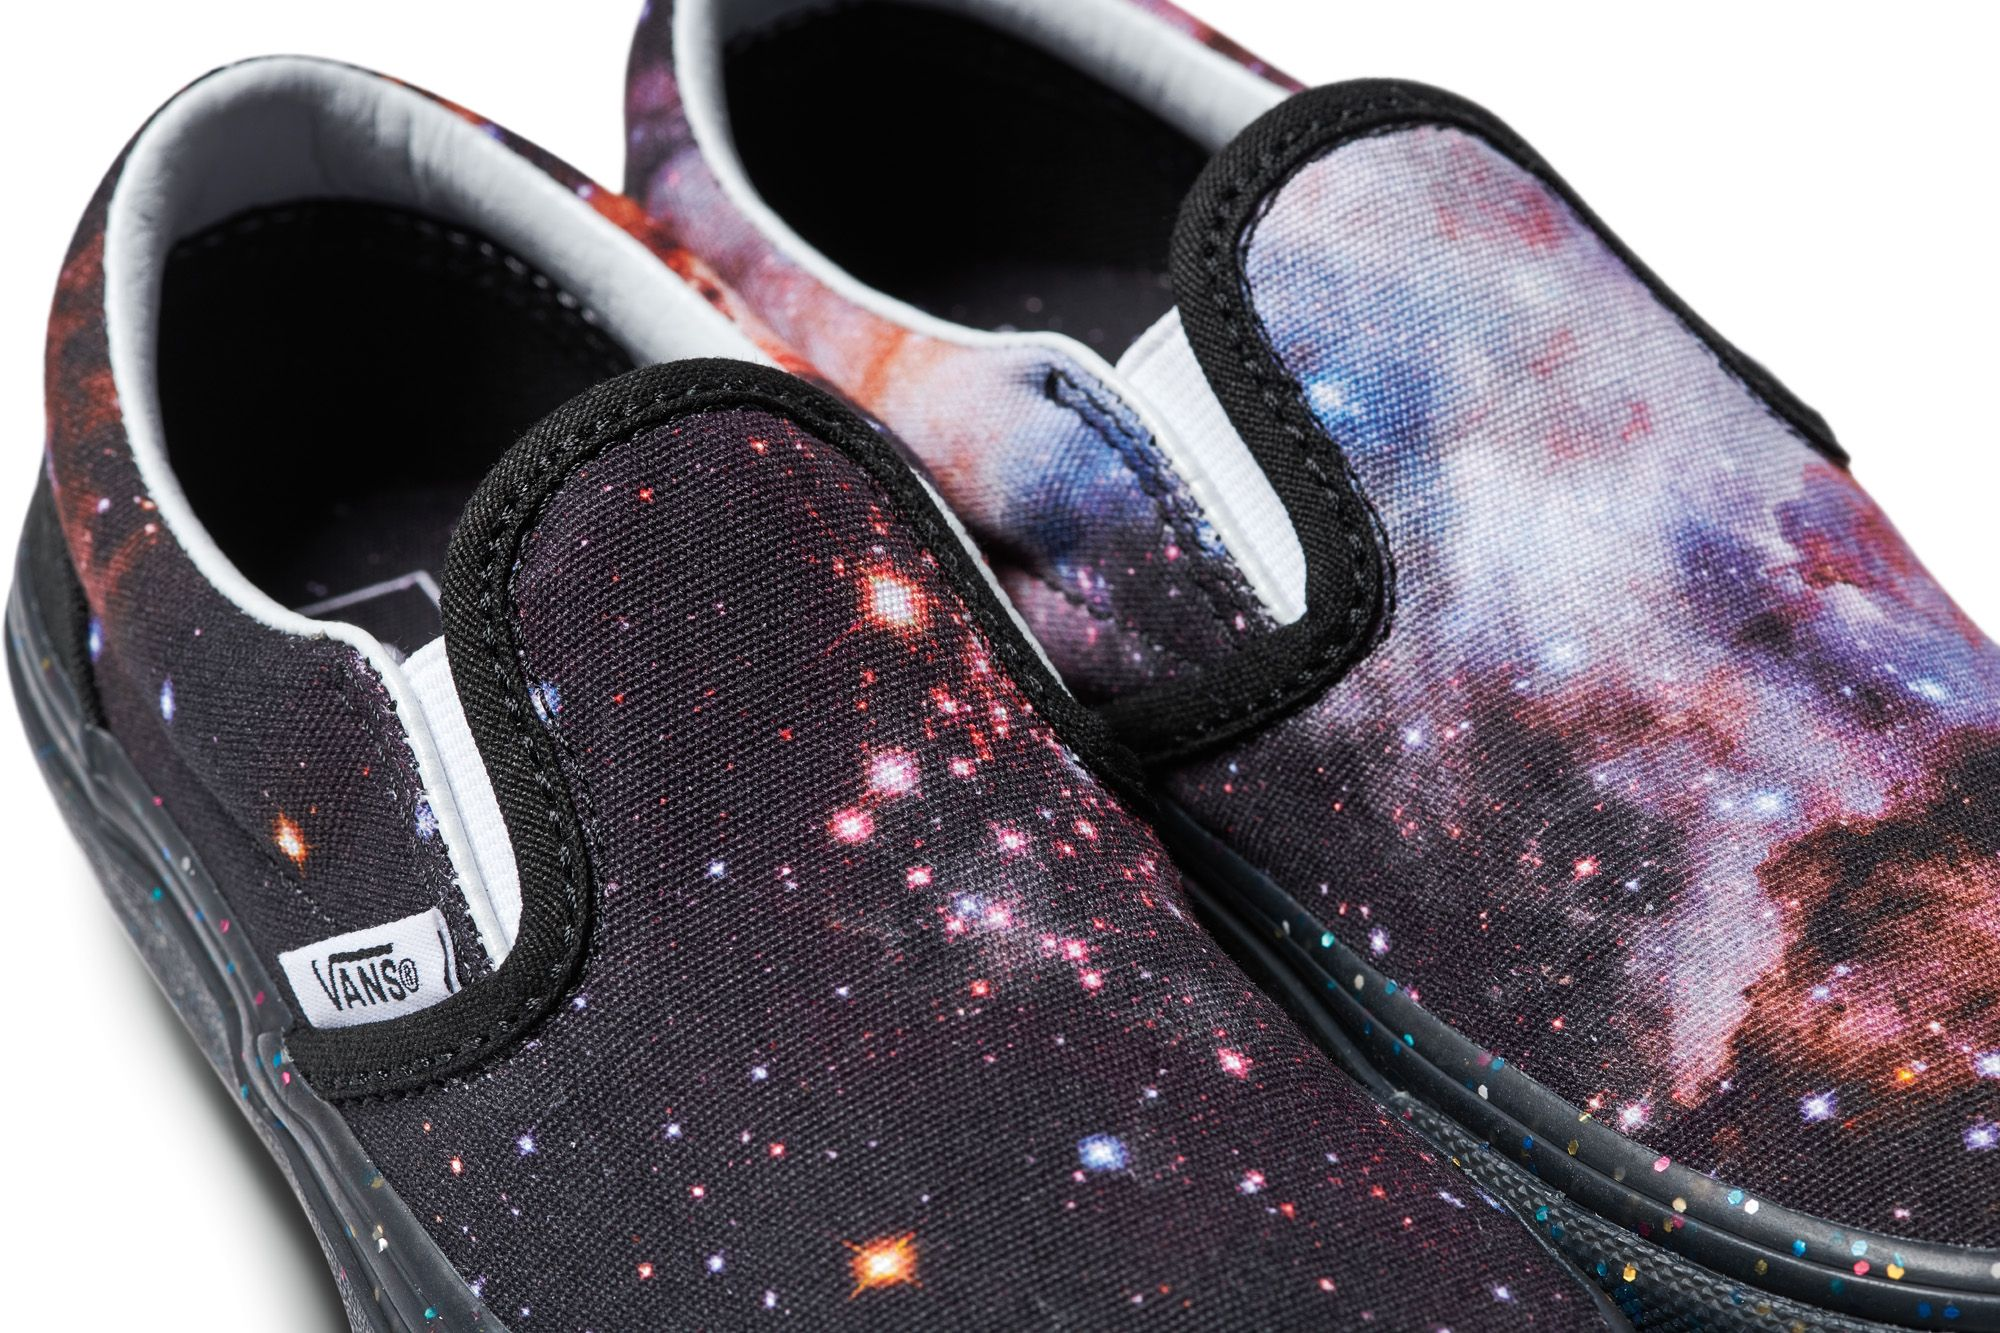 Vans X Nasa Space Voyager Sneaker And Clothes Collection